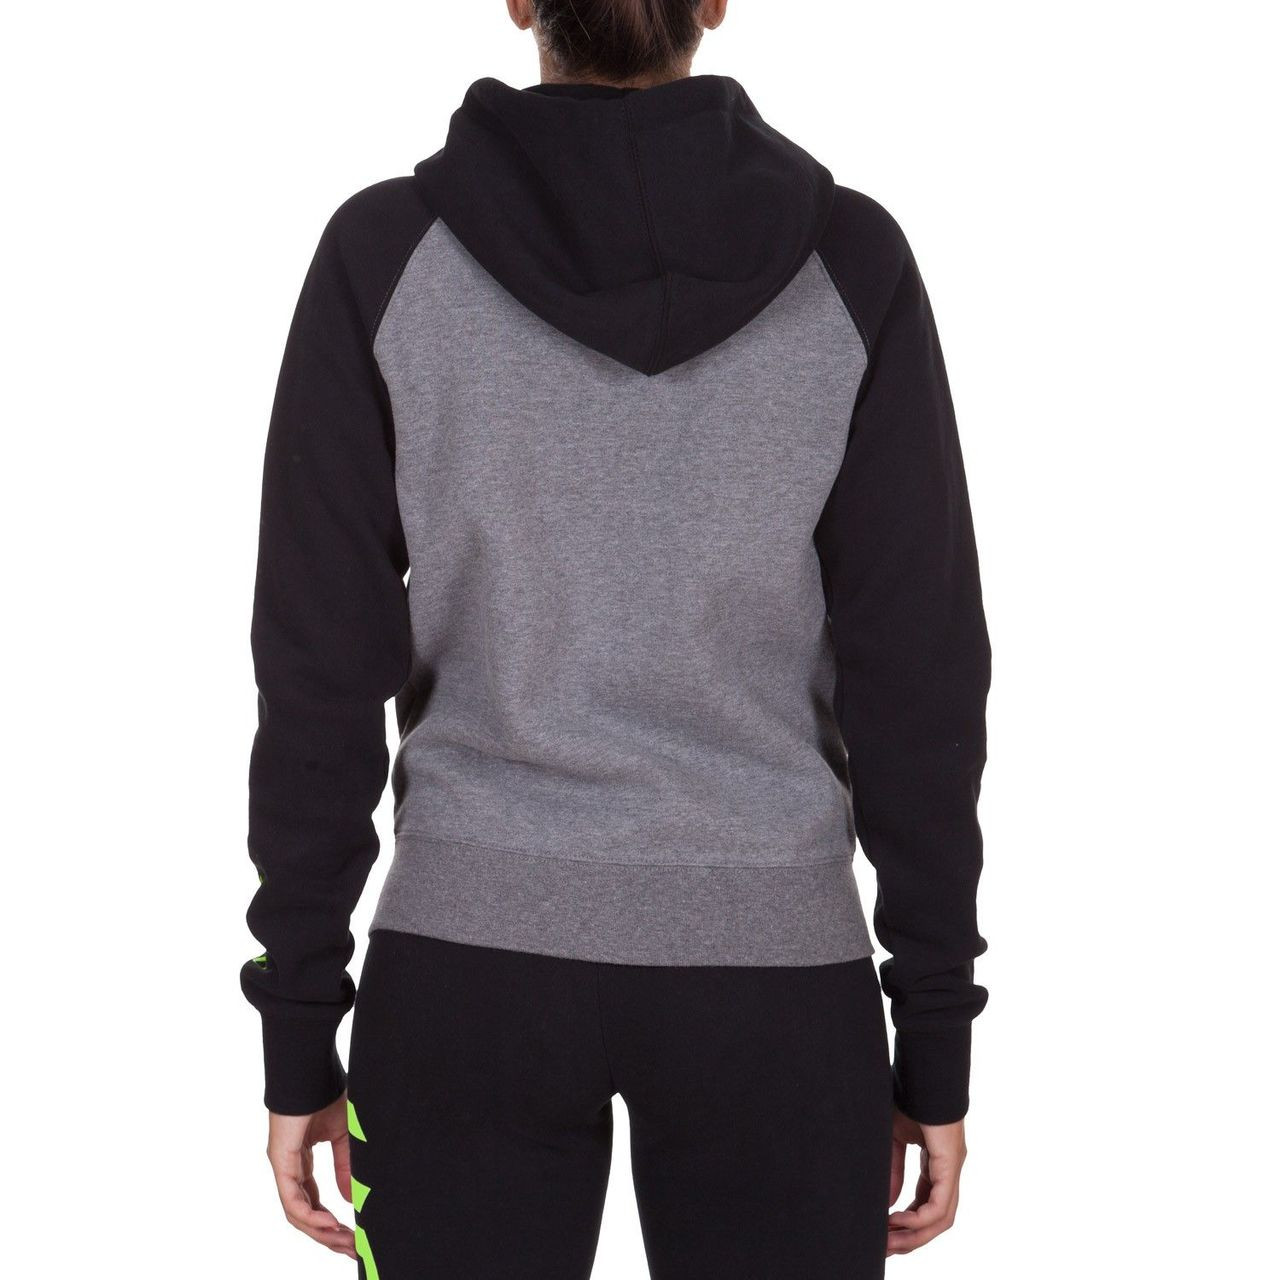 Back view of the Venum Infinity Hoody designed for women.  Available at www.thejiujitsushop.com  Order now for free shipping across the store!